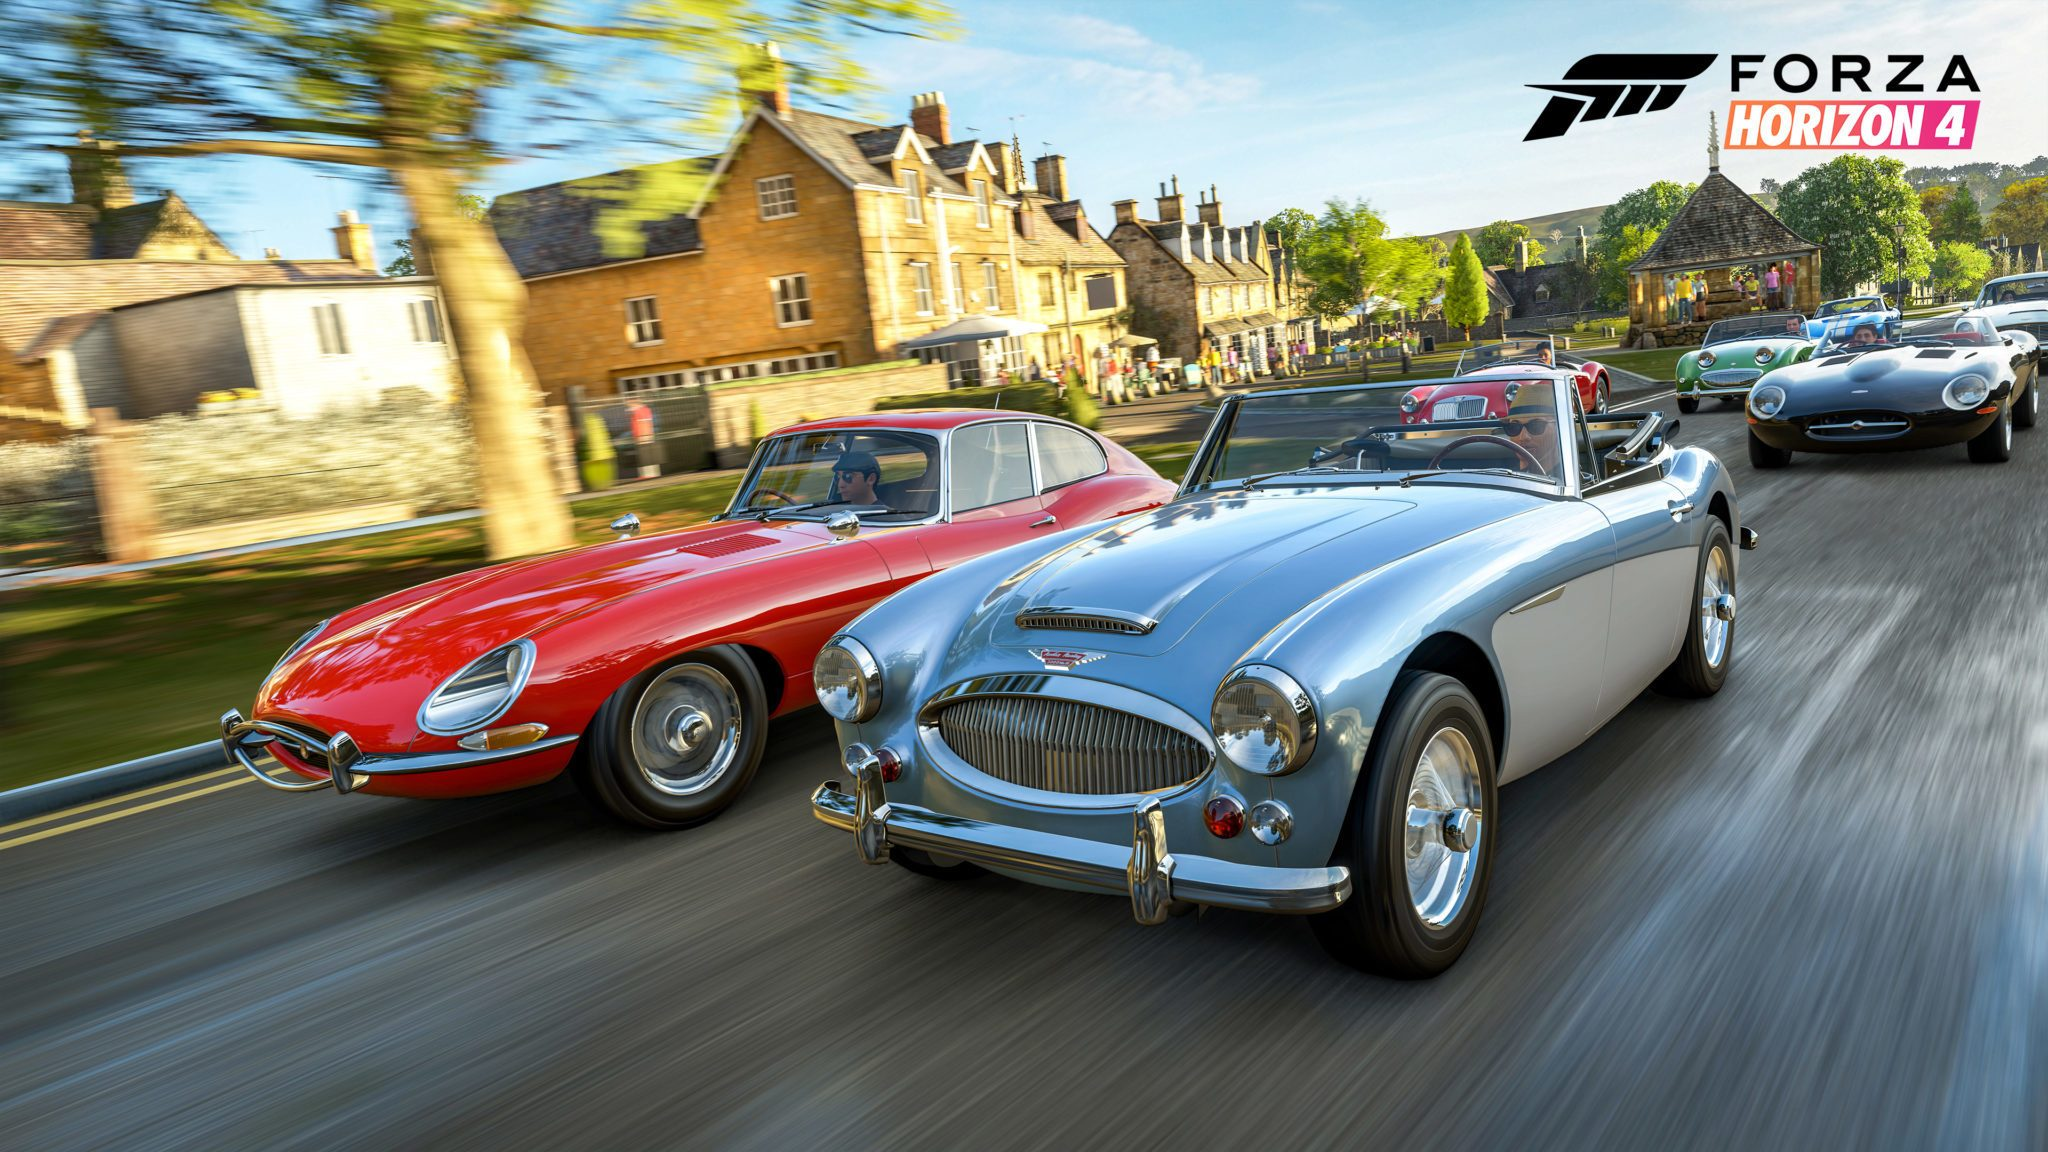 Playground Games Confirms Forza Horizon 4 is Not Always-Online